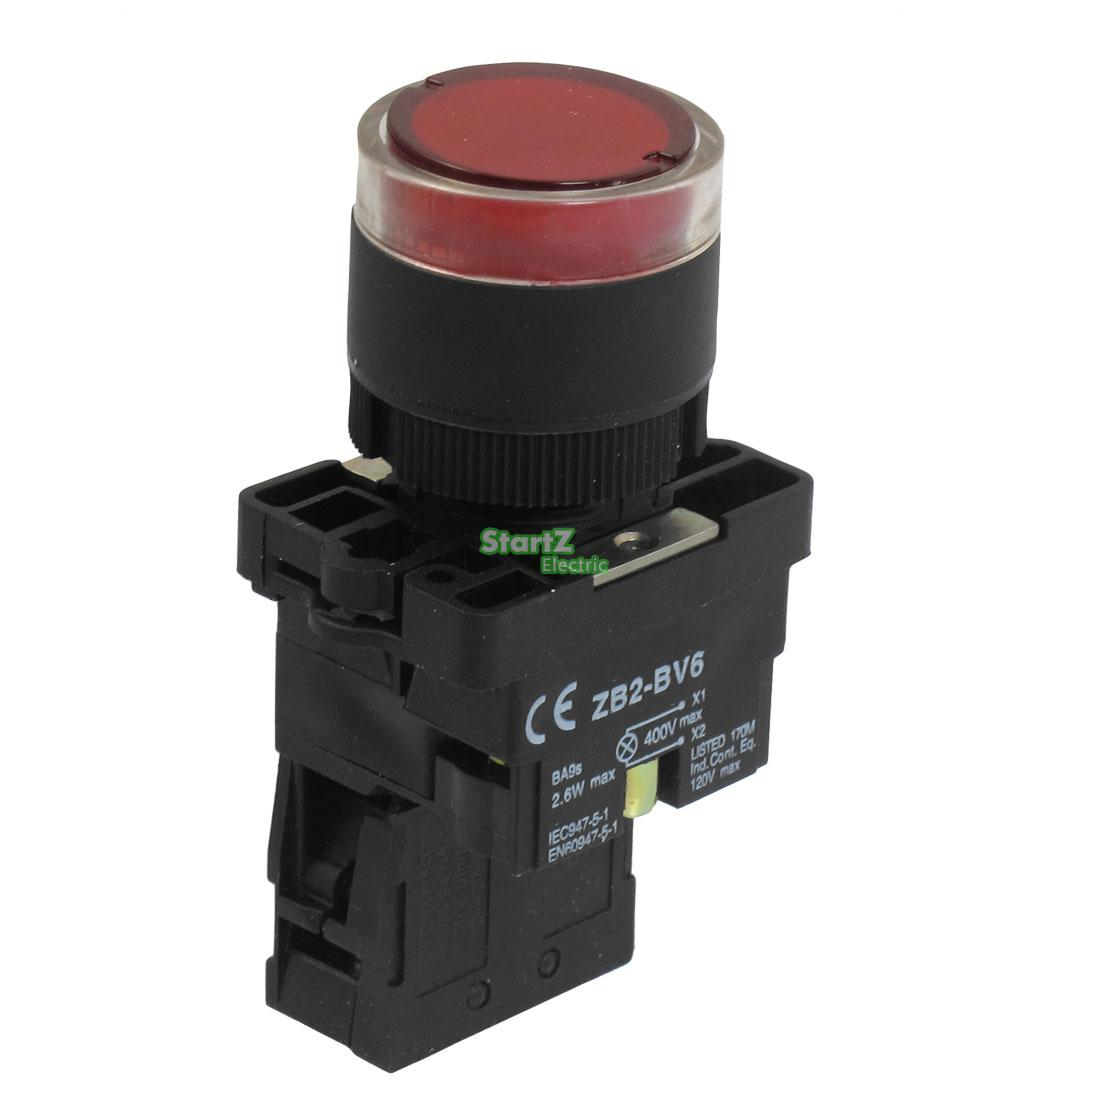 5Pcs 22mm NC Red Illuminated Light Momentary Push Button Switch AC 220V ZB2-EW3462 встраиваемый светильник novotech pearl 370138